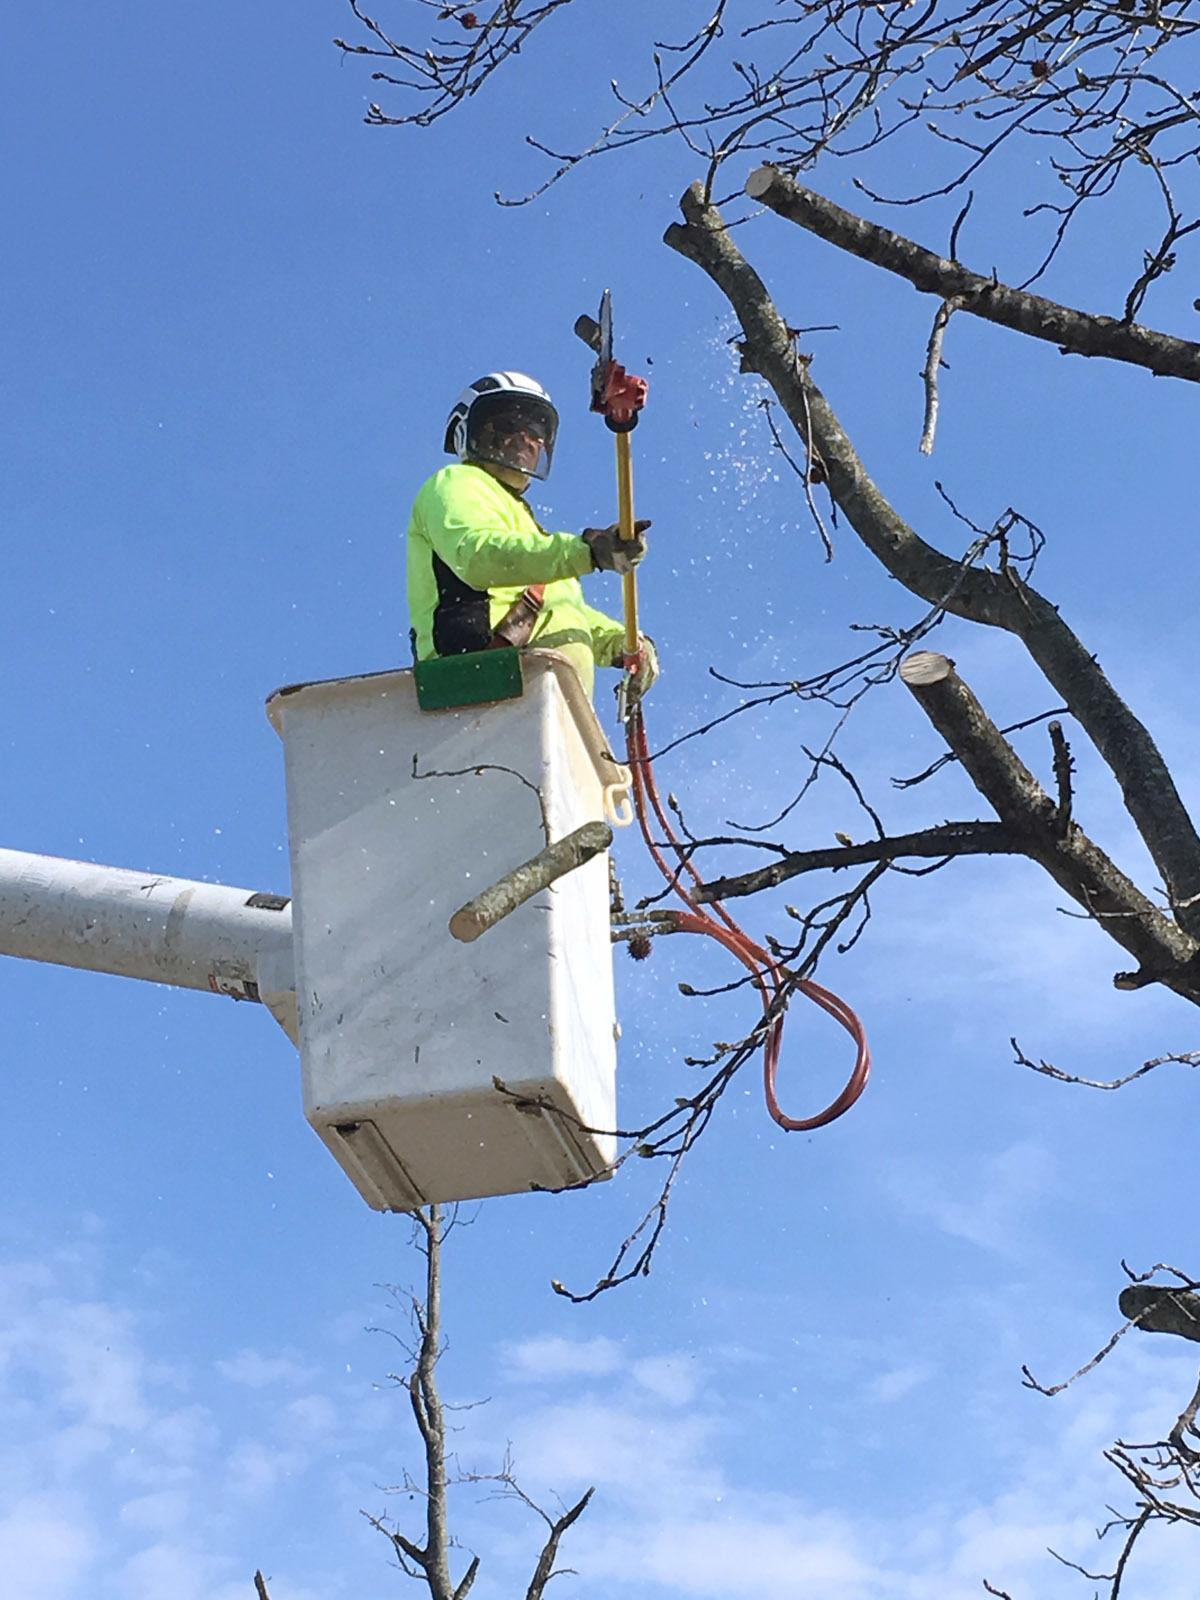 Jared Boddy of Boddy and Sons Tree Service of Vine Grove/Rineyville cuts  part of a limb Thursday morning in front of Vine Grove Elementary School.